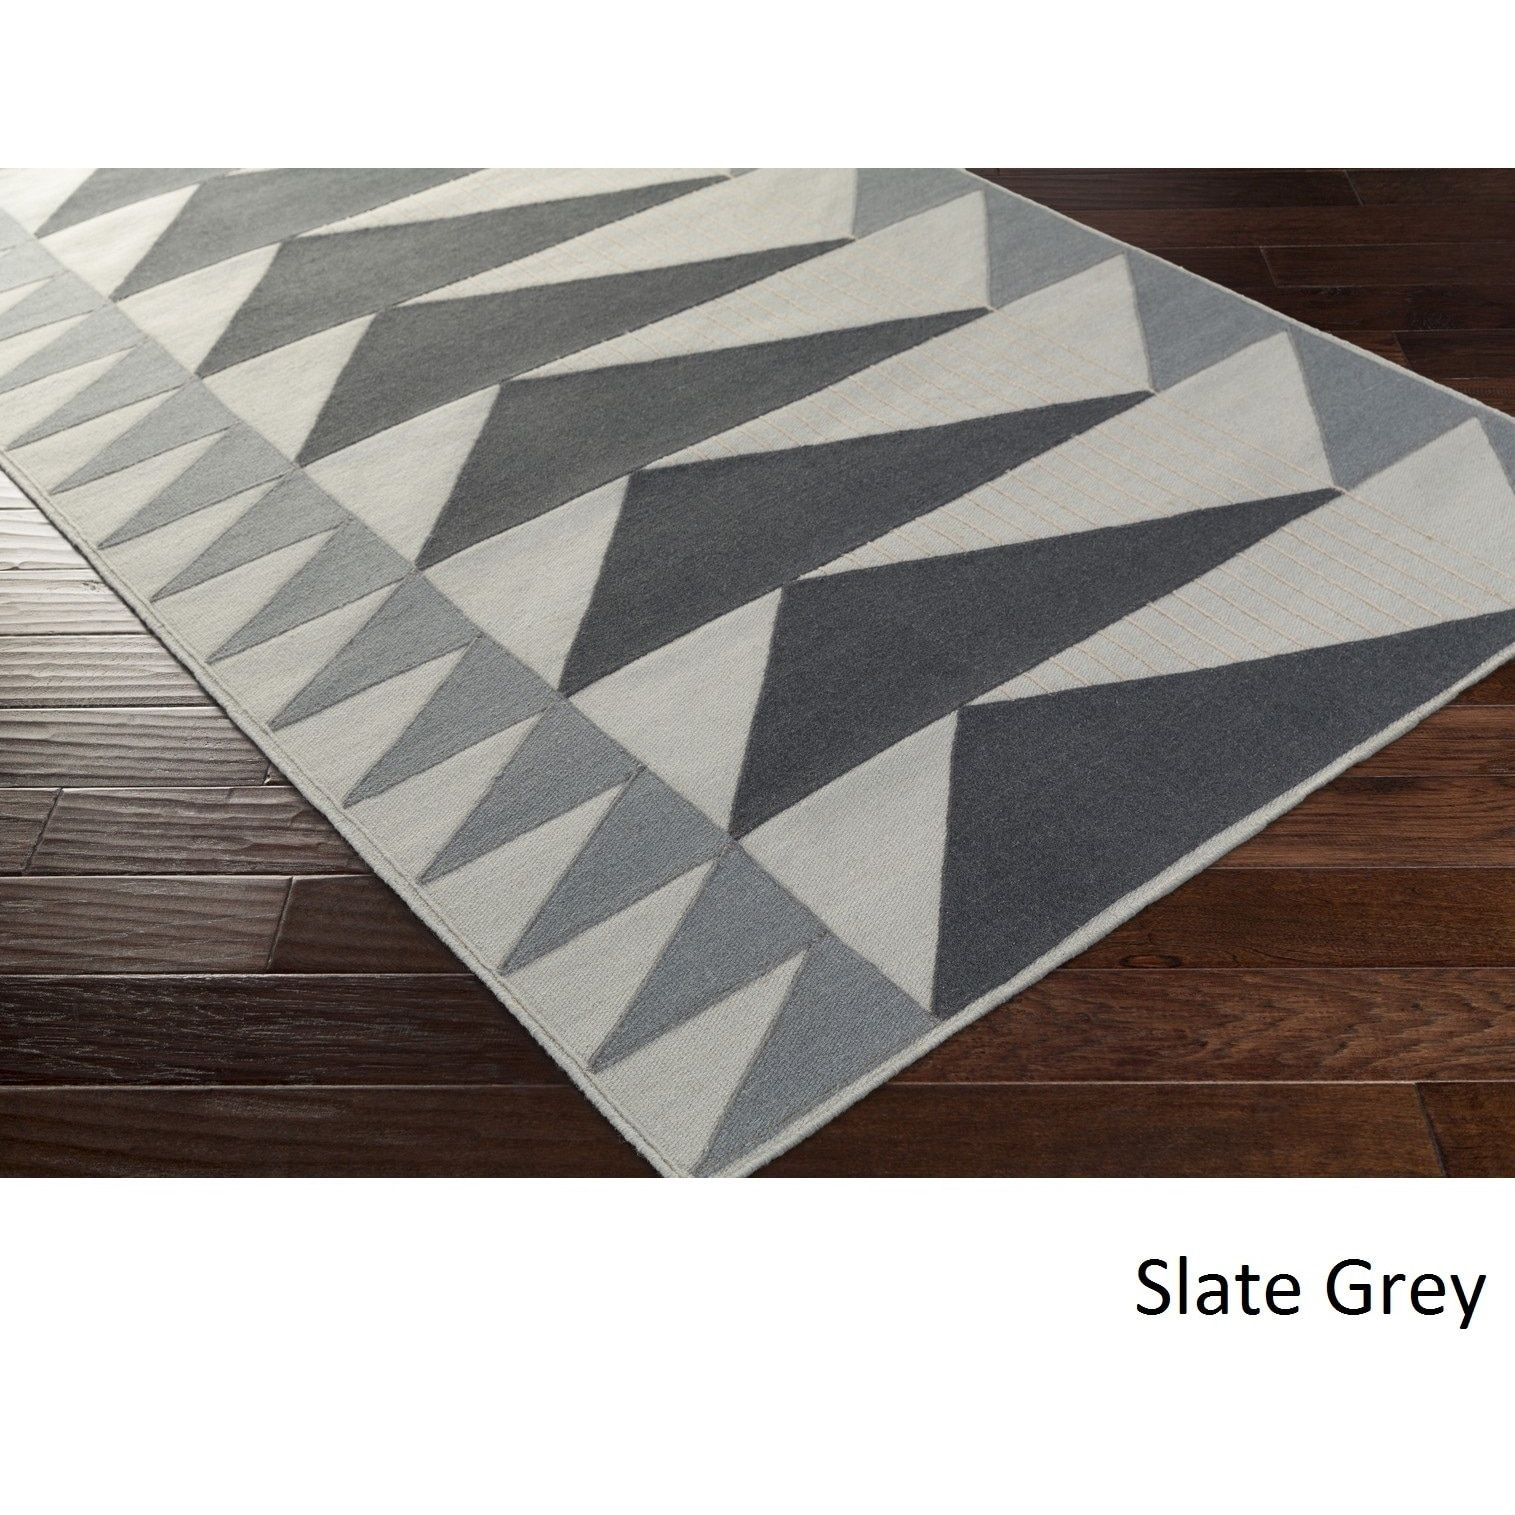 Online Shopping Bedding Furniture Electronics Jewelry Clothing More Cotton Area Rug Geometric Rug Light Grey Area Rug